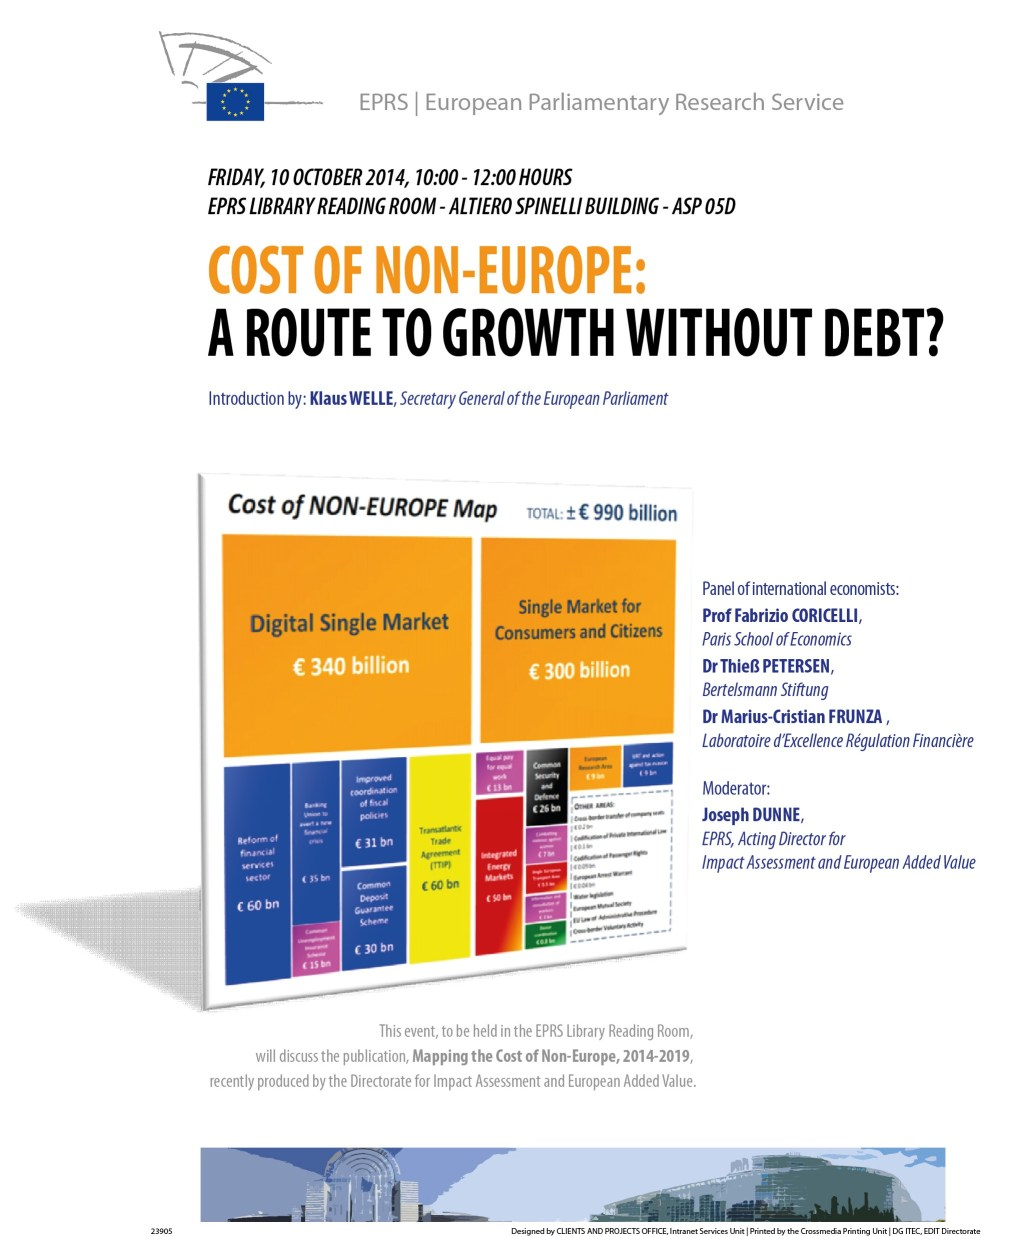 Panel Discussion on 'Cost of Non-Europe: A Route to Growth without Debt?'